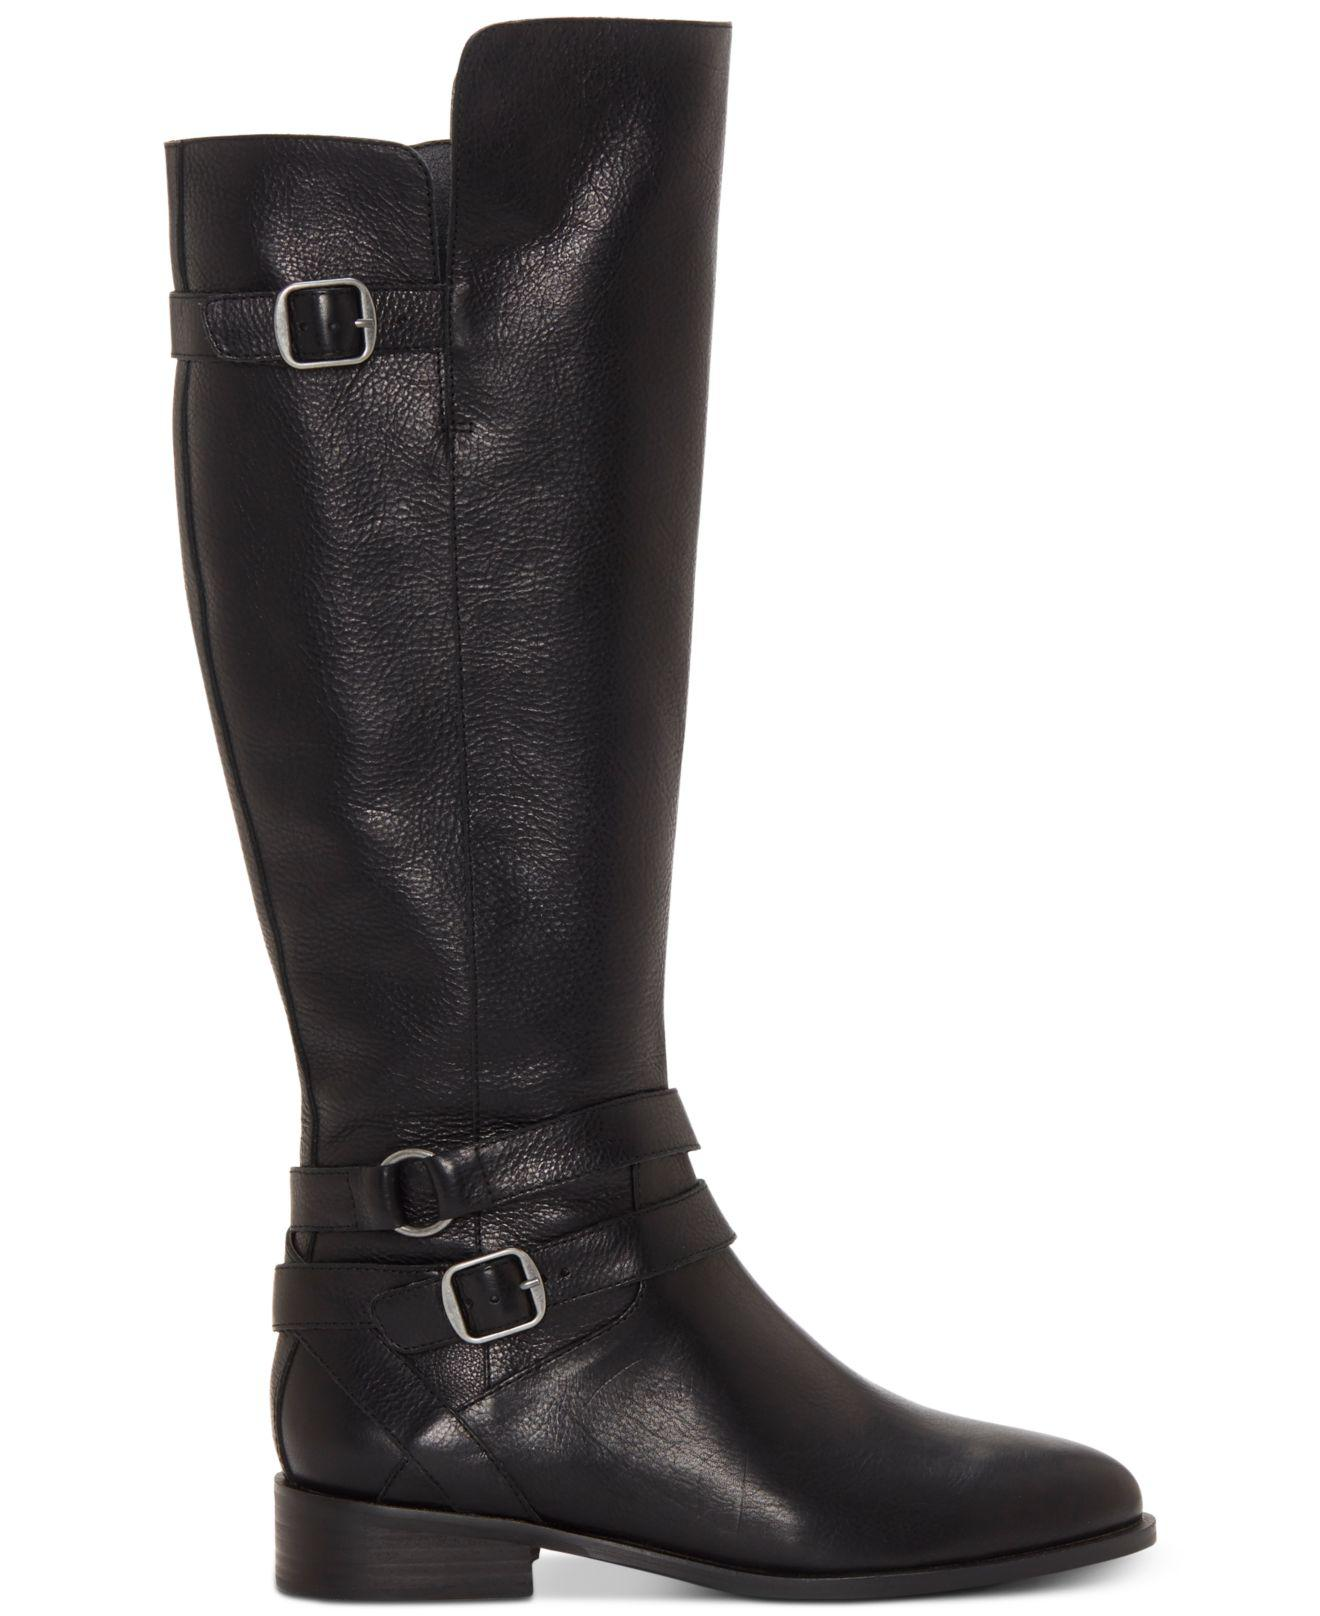 6e67b90a6d07 Lyst - Lucky Brand Paxtreen Over The Knee Boot in Black - Save  32.432432432432435%